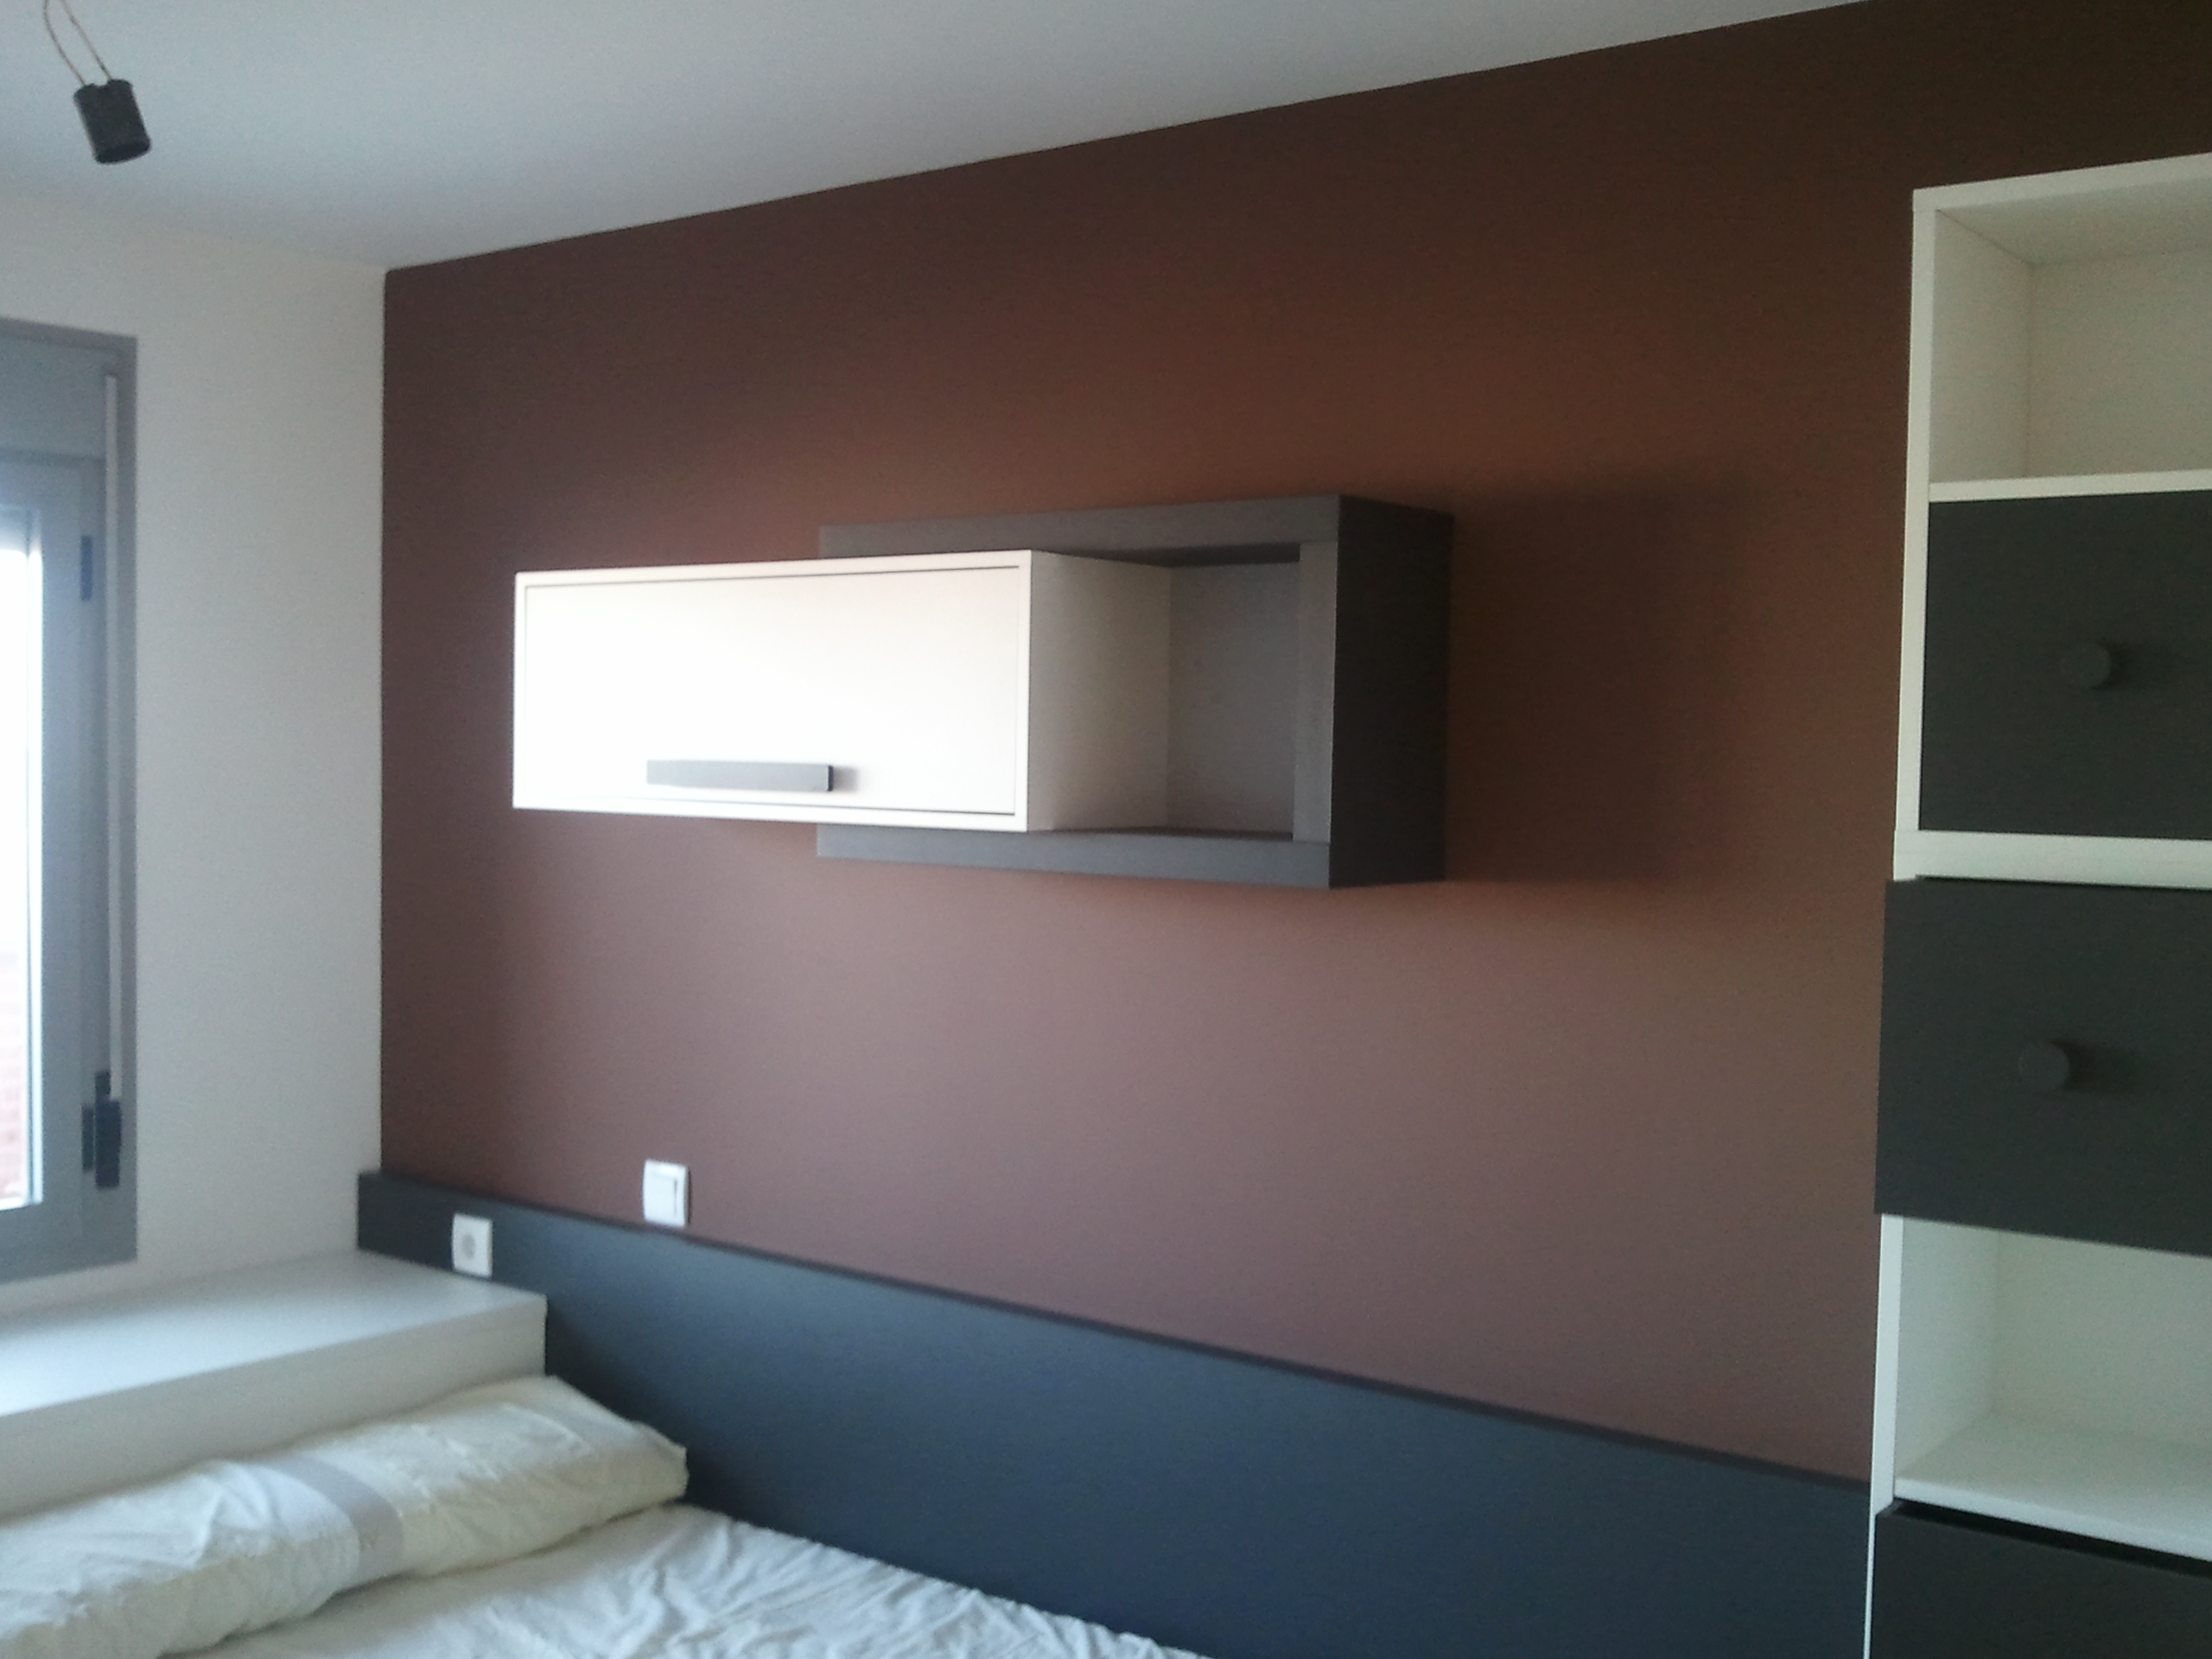 Presupuesto Pintores Madrid Pintura Plastica Color Blanco Y Chocolate – Marron